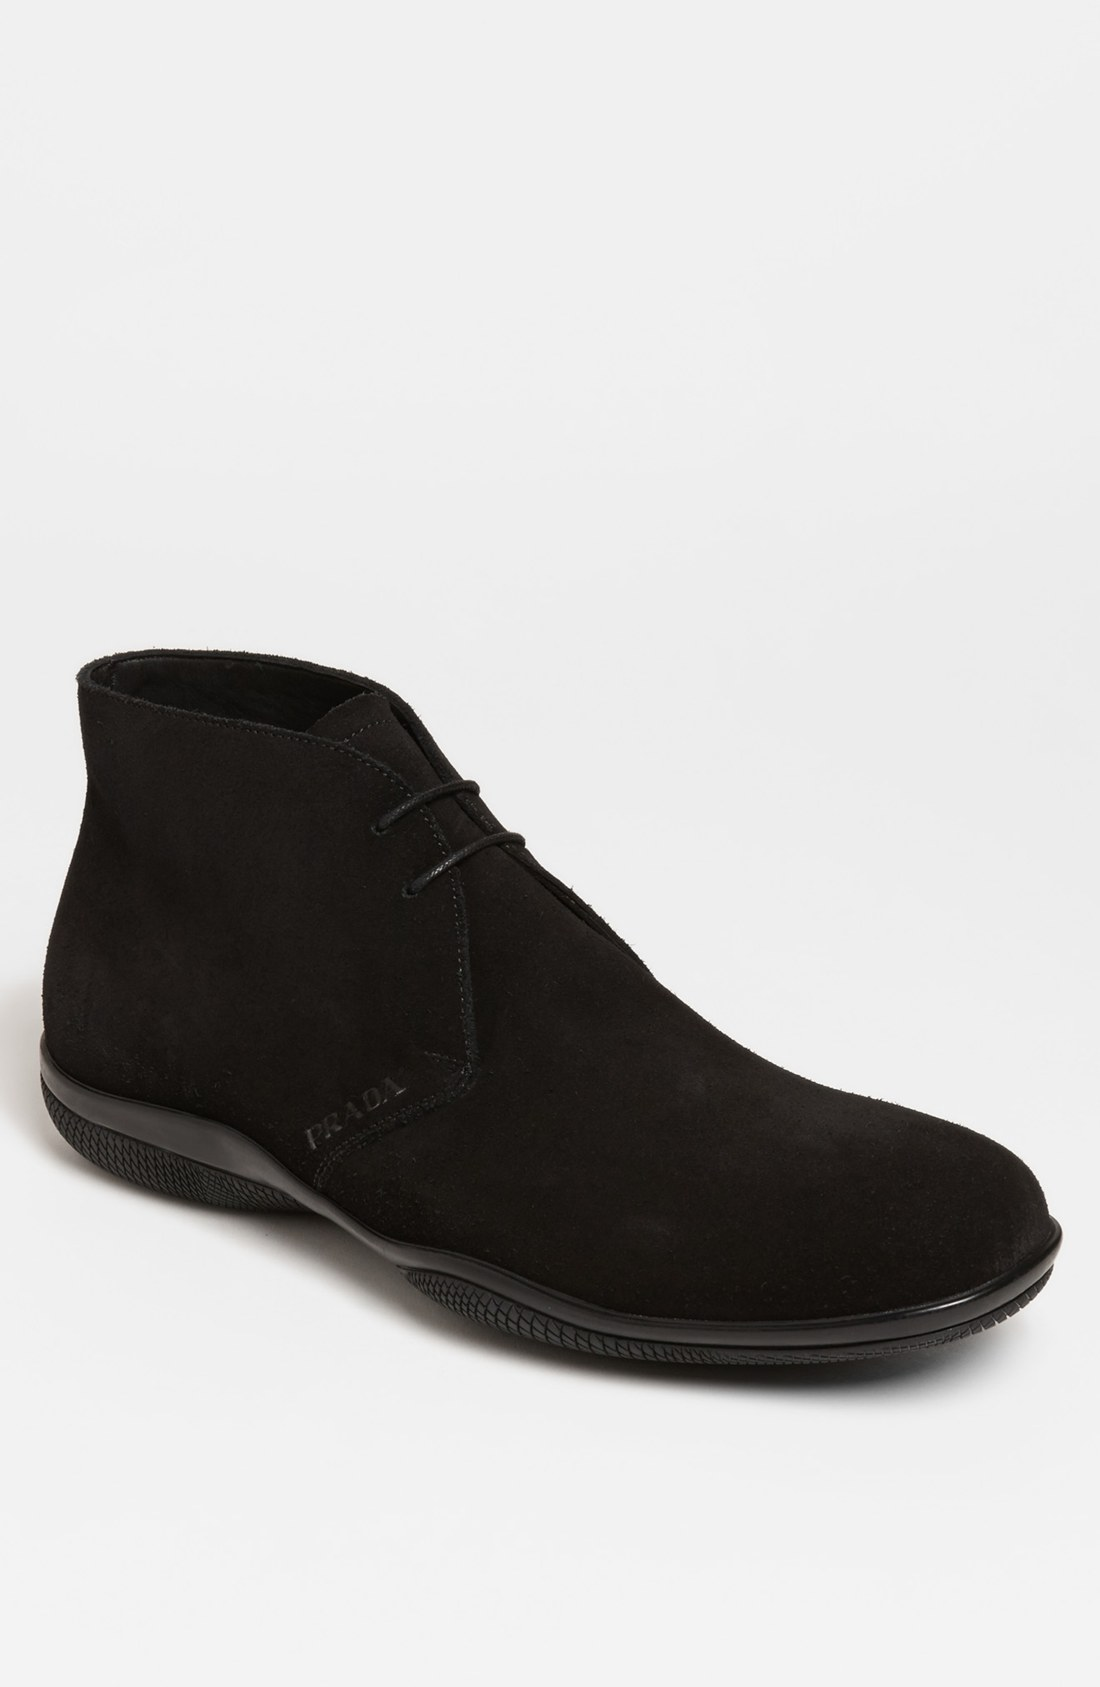 prada toblac chukka boot in black for lyst